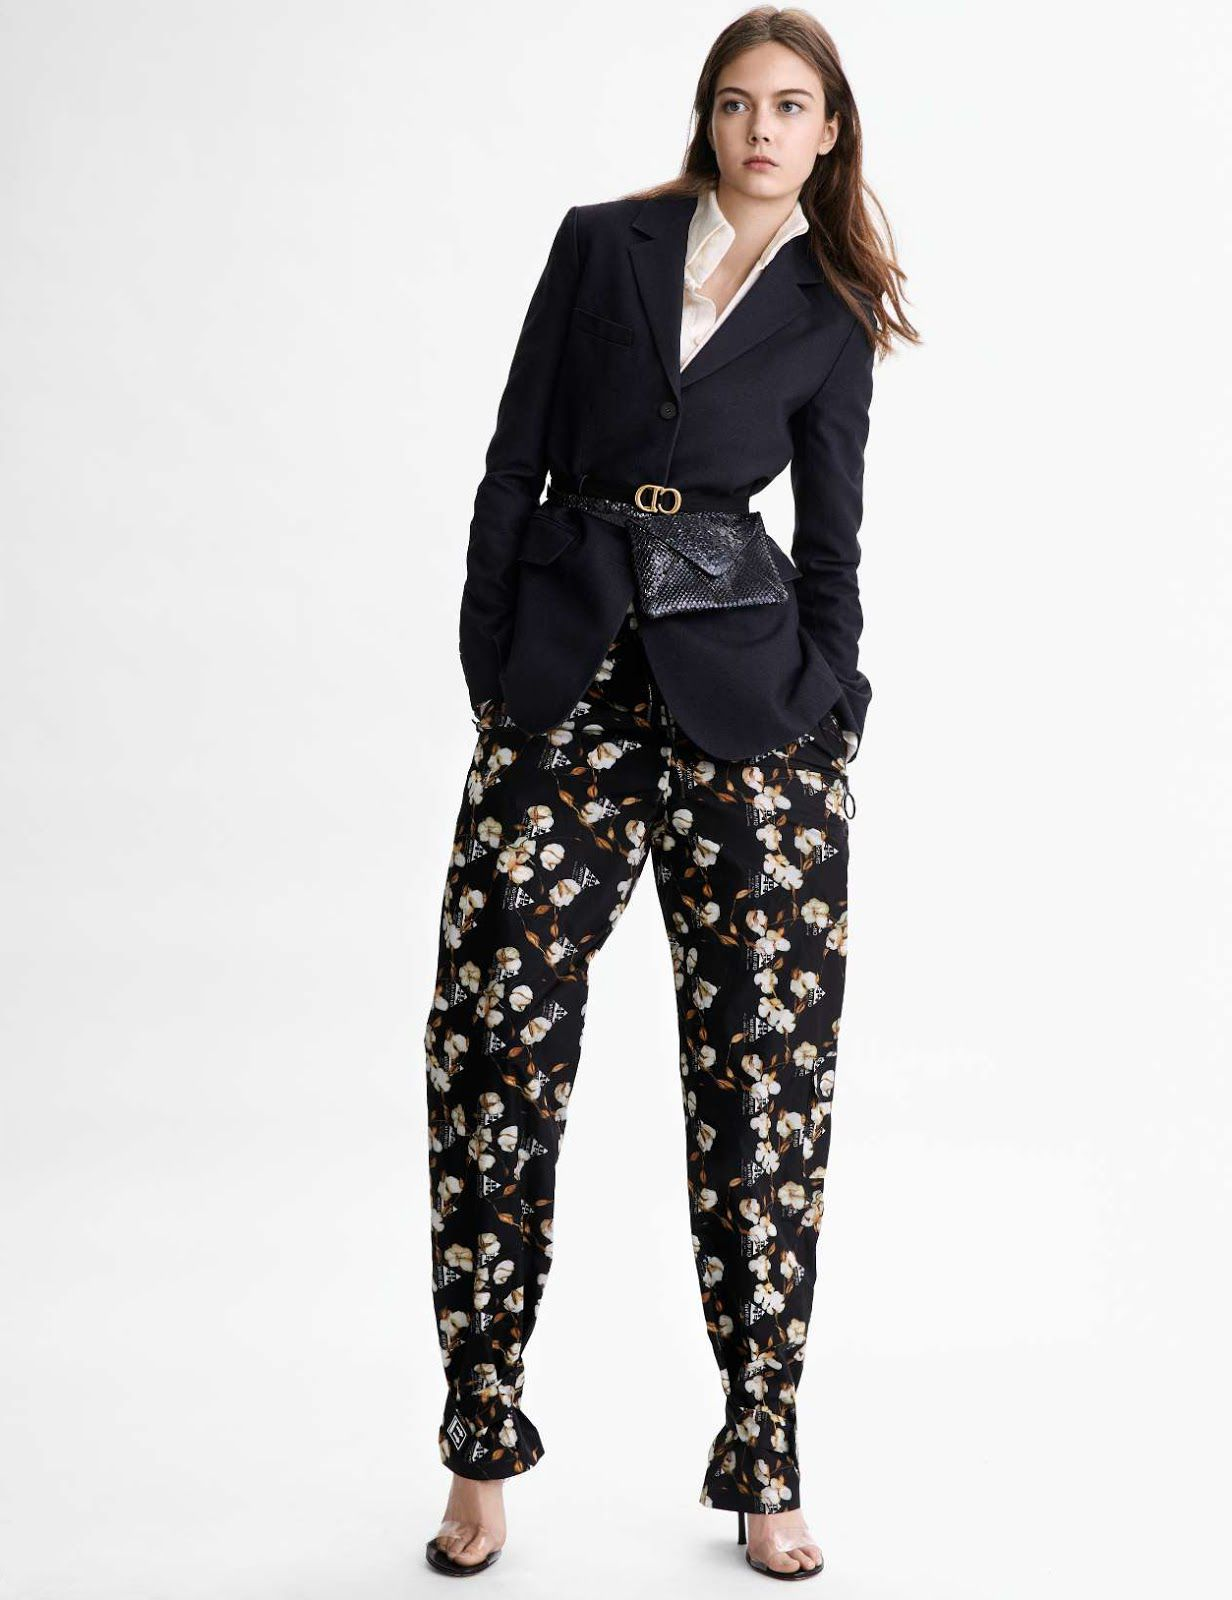 Laura Turka in black blazer and flowered pants